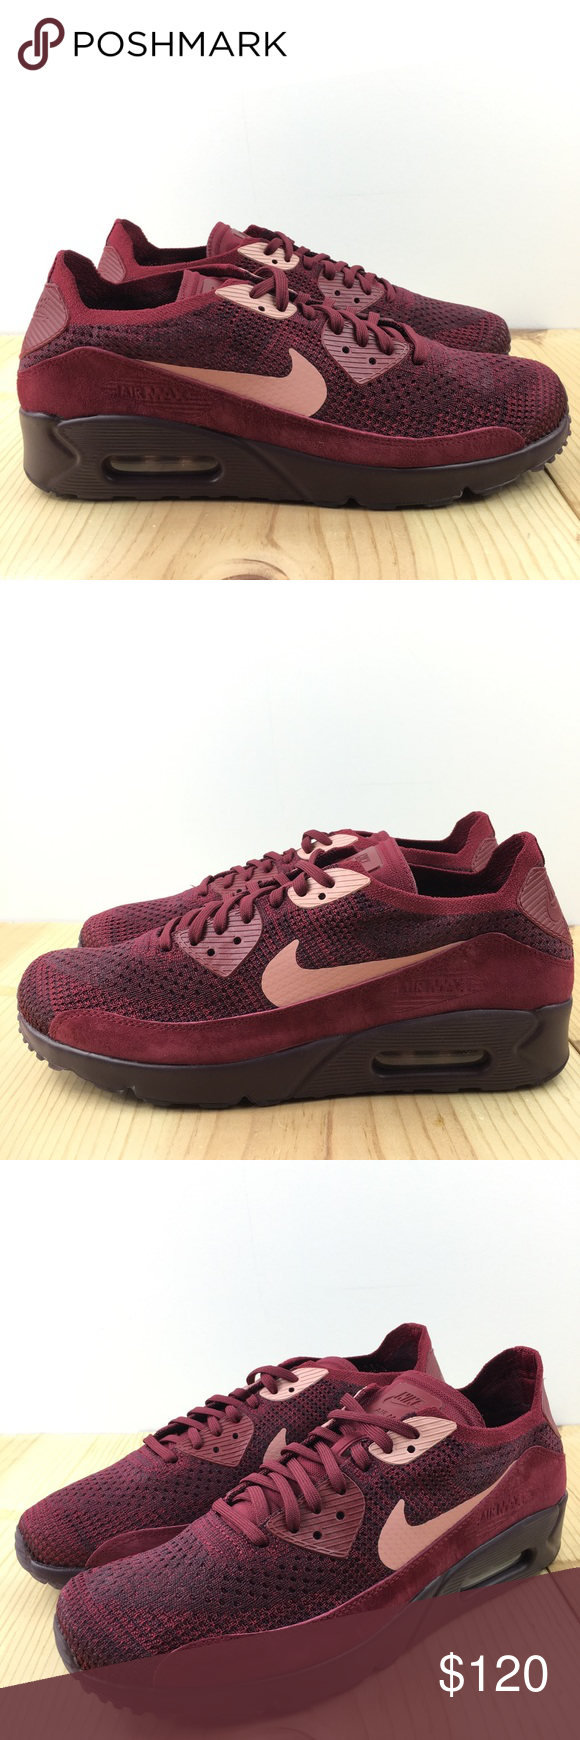 Nike Air Max 90 Ultra 2.0 Flyknit Red 875943 601 Men' Casual Shoes